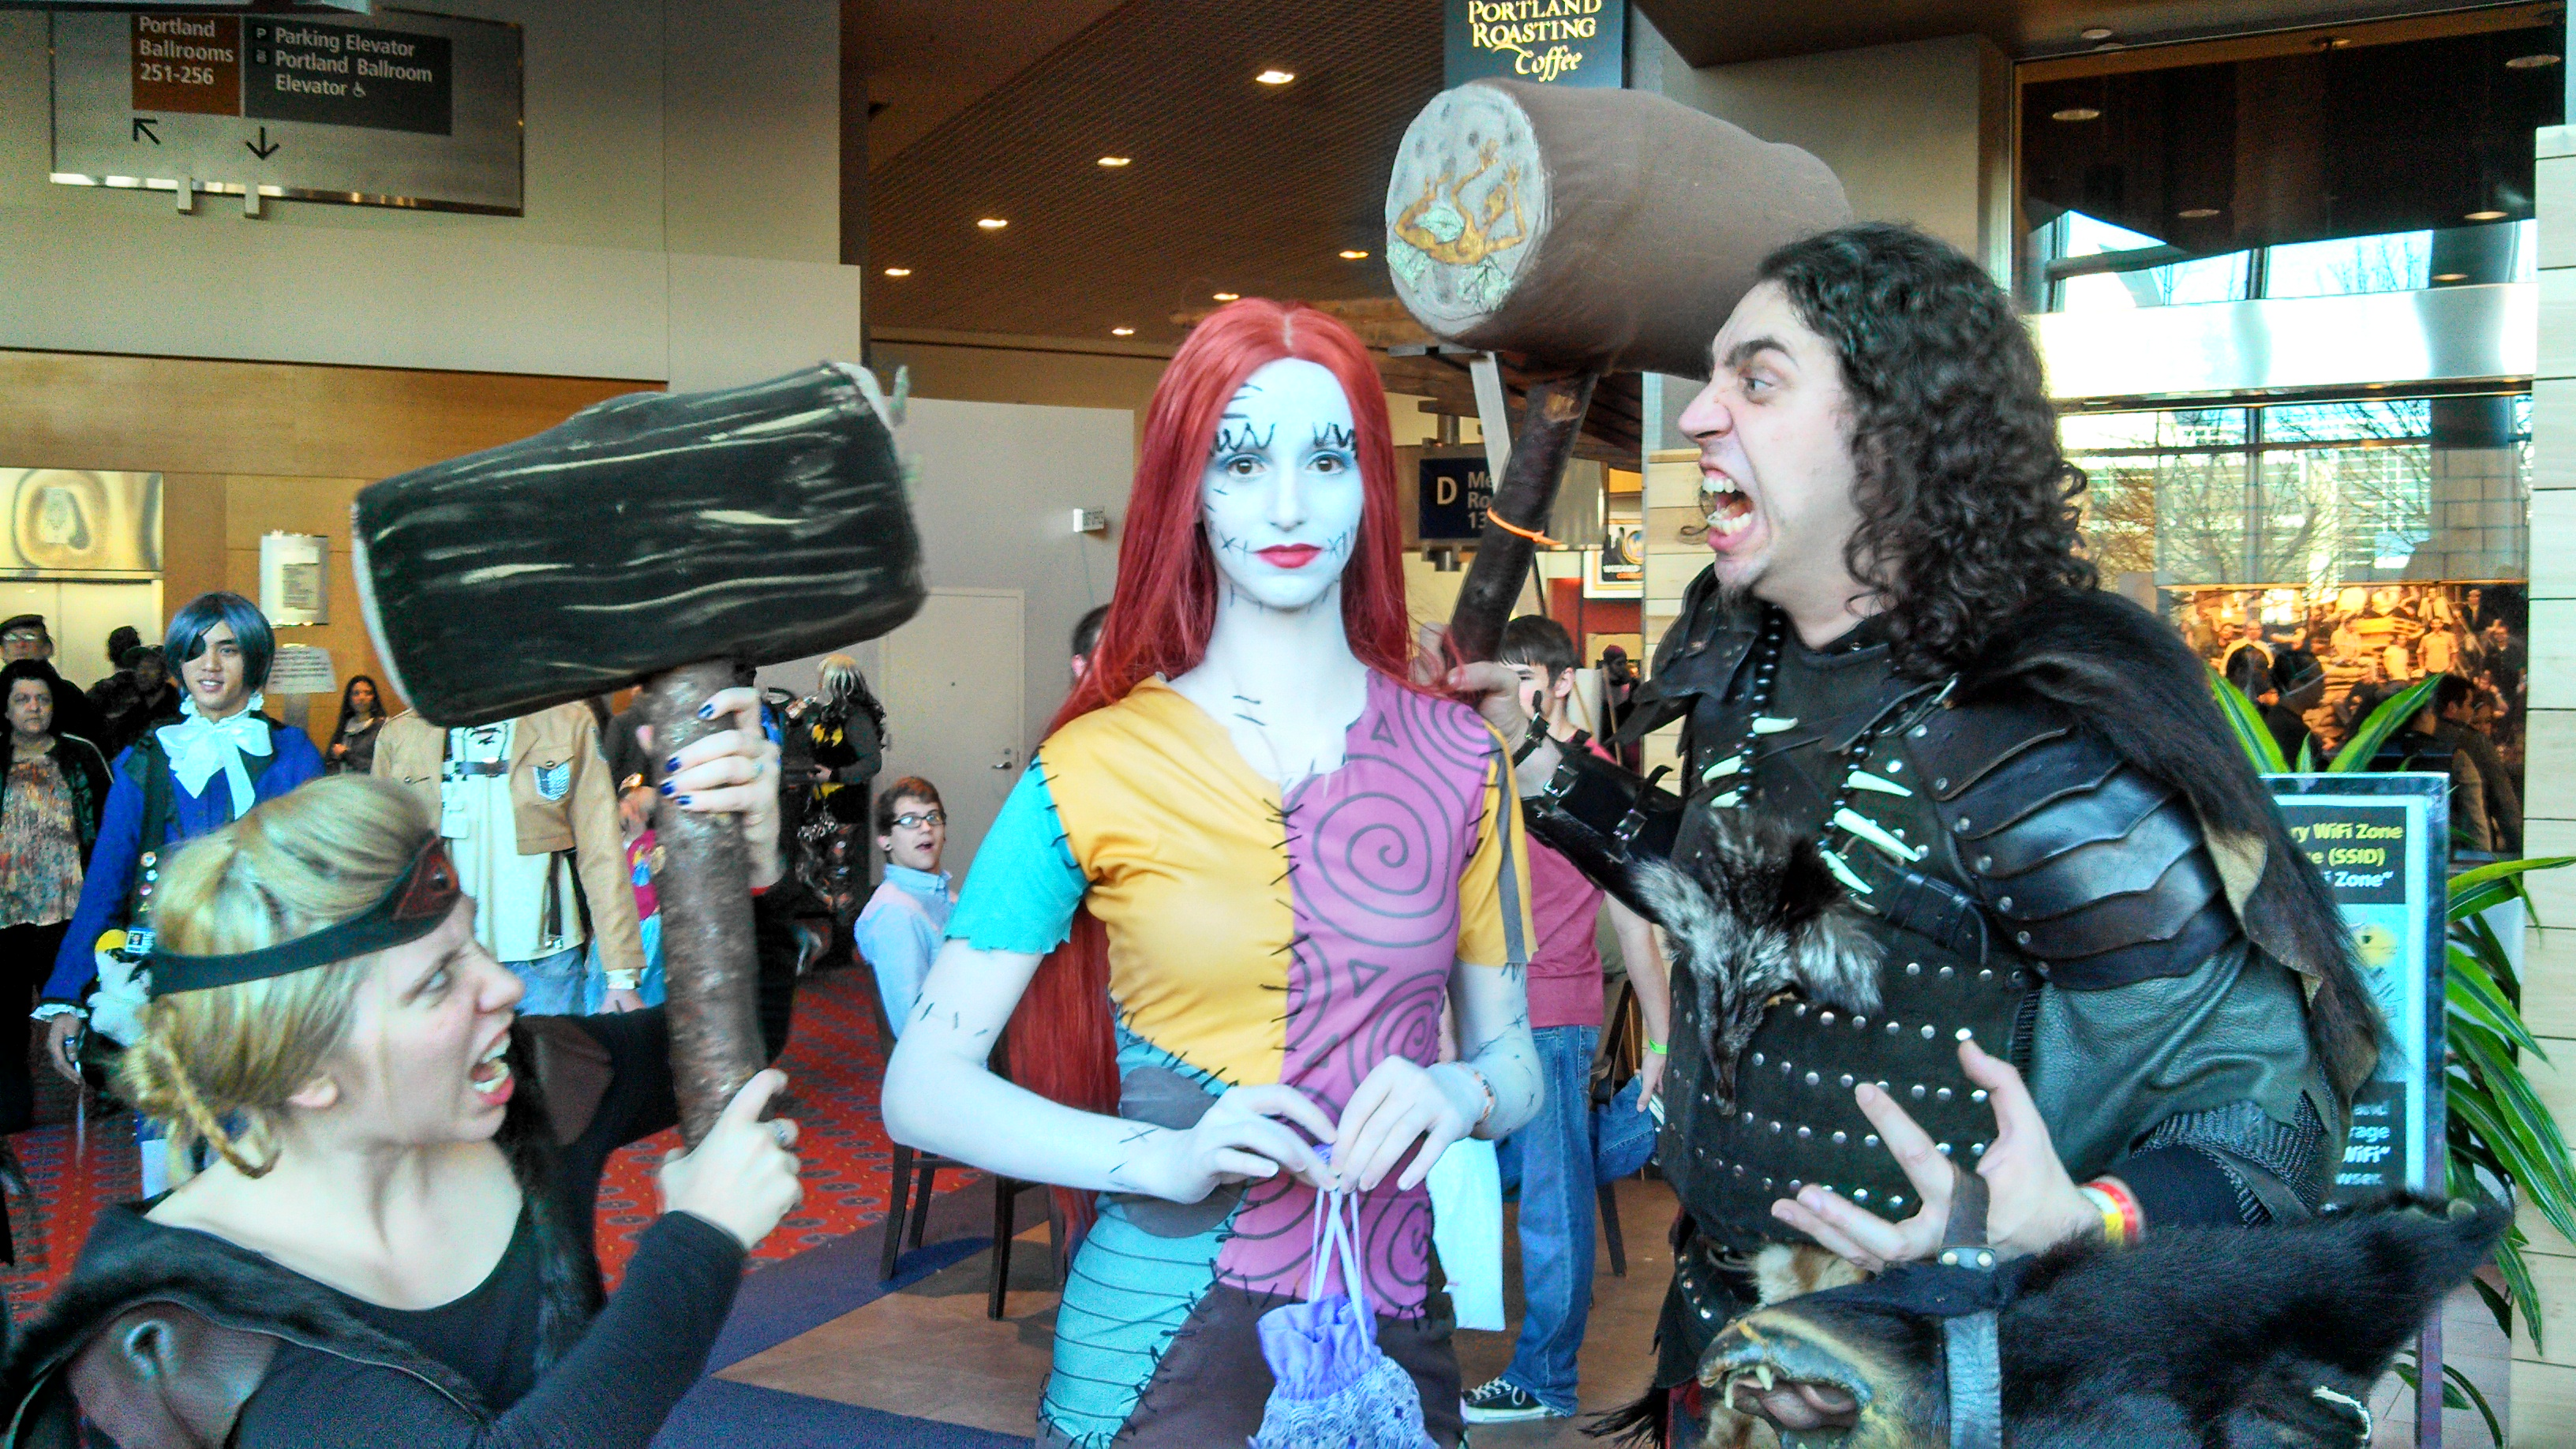 tales from the wizard world portland comic-con + killer cosplay